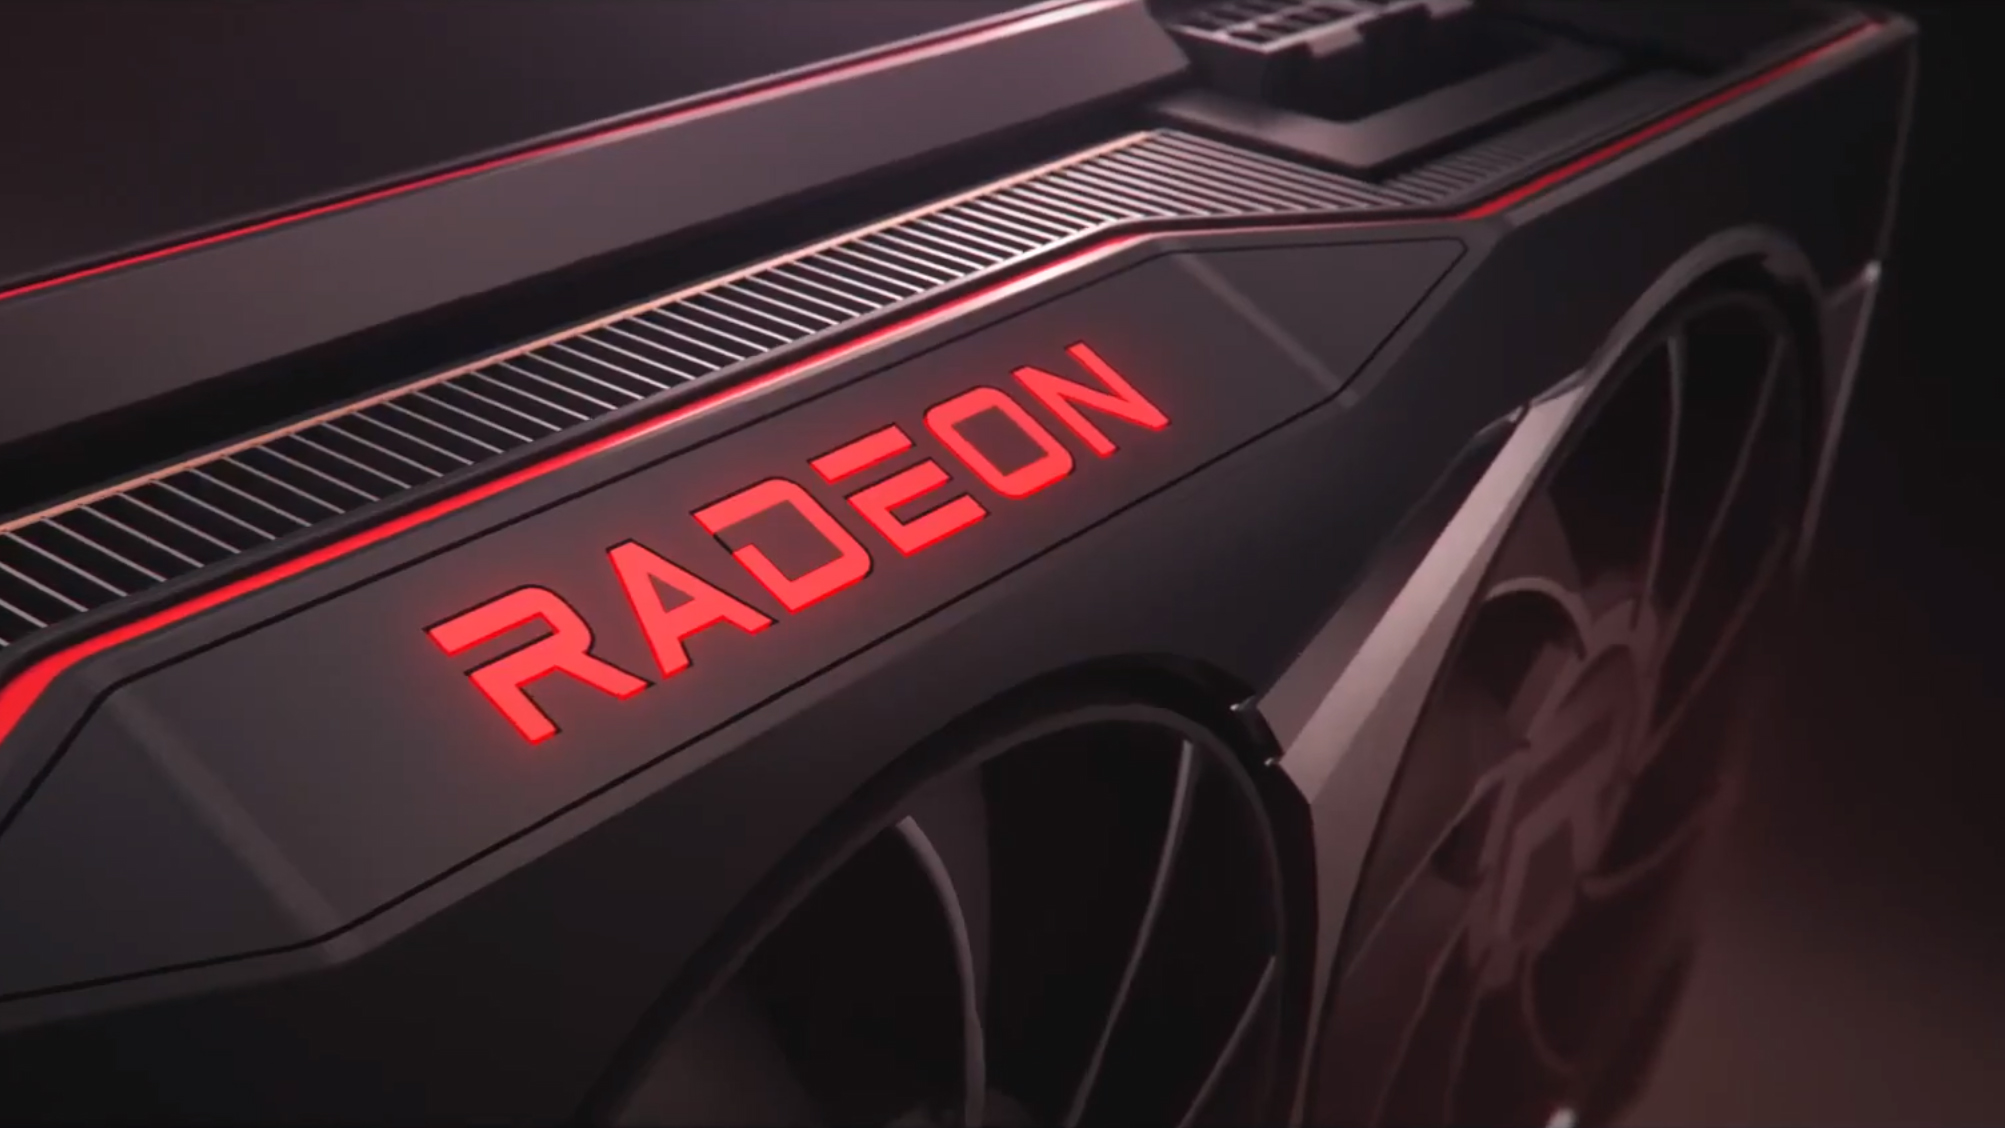 AMD's FidelityFX Super Resolution will launch this year to take on Nvidia DLSS thumbnail